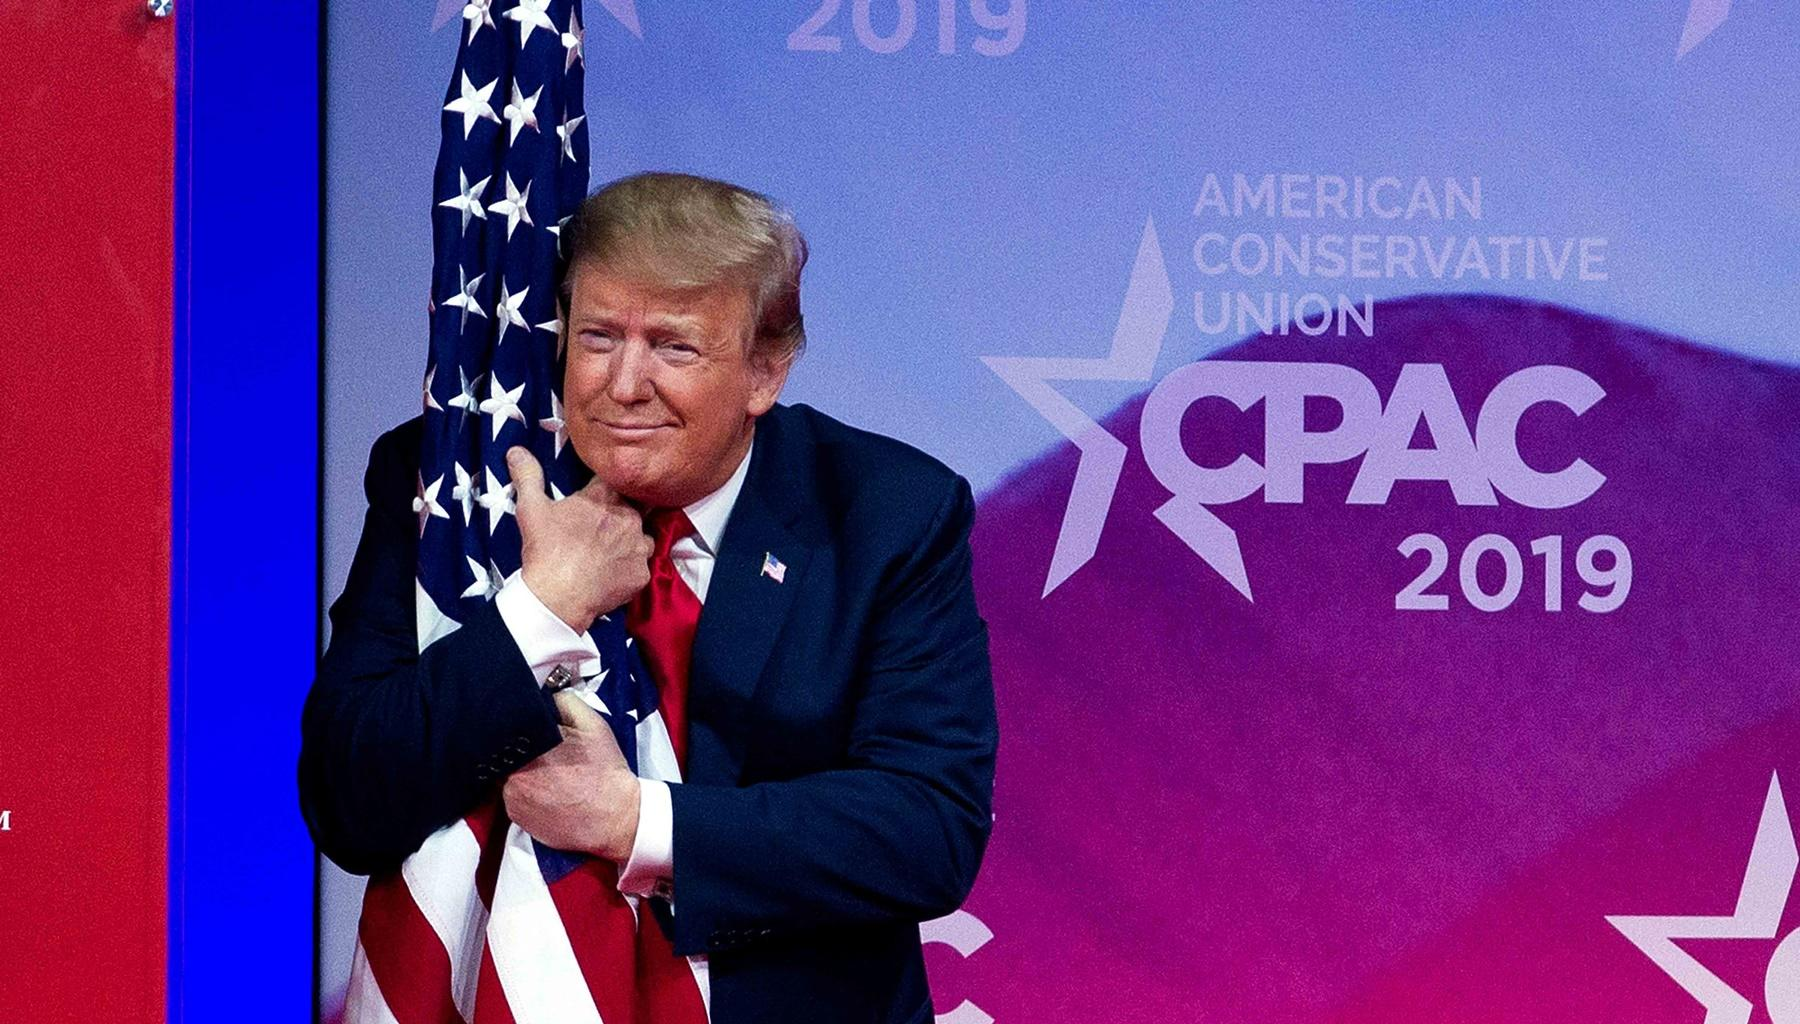 Donald Trump's Extravagant July 4th Military Parade Is Seen As Nauseating And Narcissistic By Democrats, White House Responds